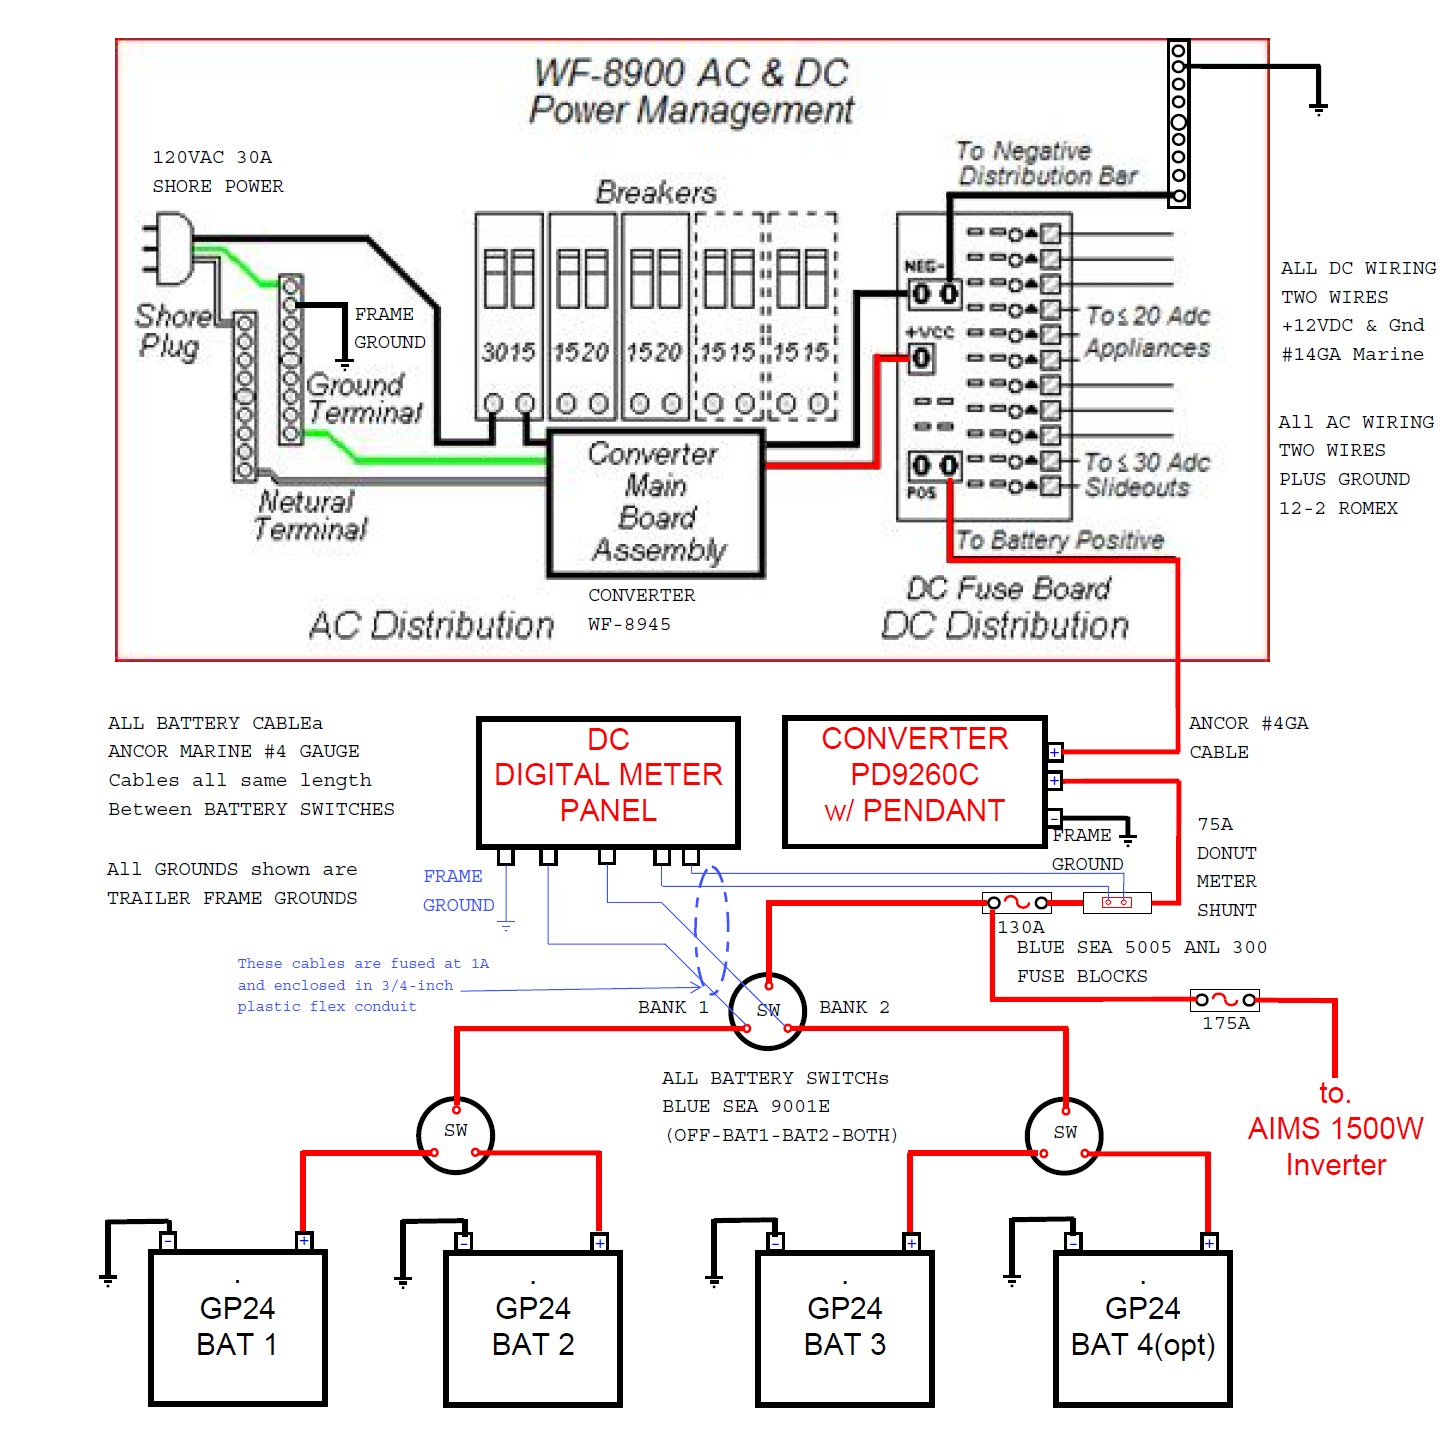 30 Amp To 50 Adapter Wiring Diagram Library Ferguson To30 Unique Rv 15 About Remodel Fuse Symbol With